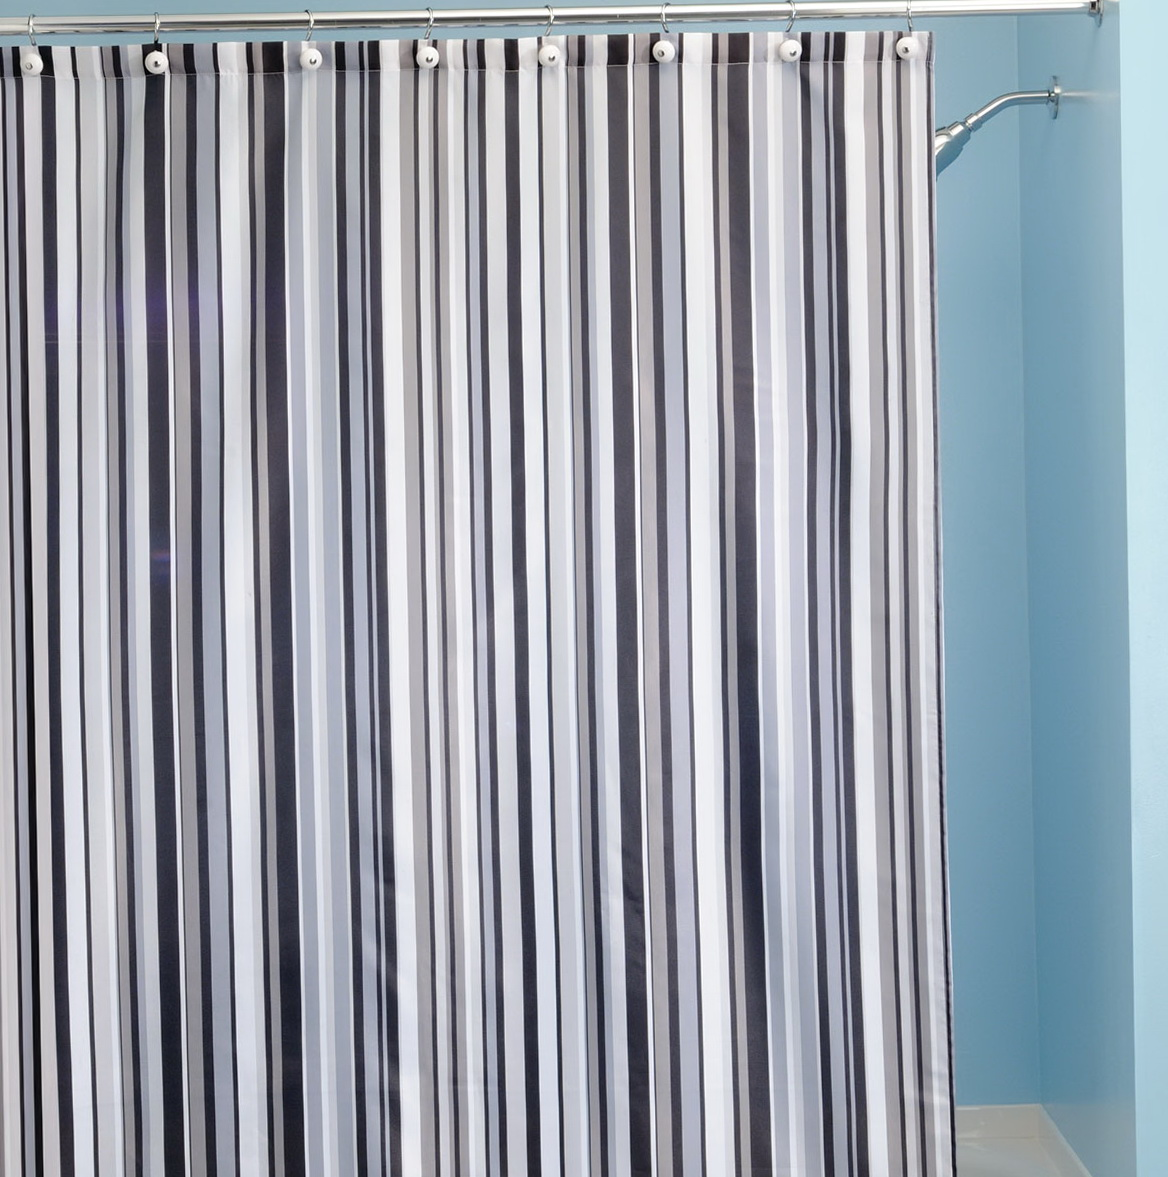 Striped Material For Curtains